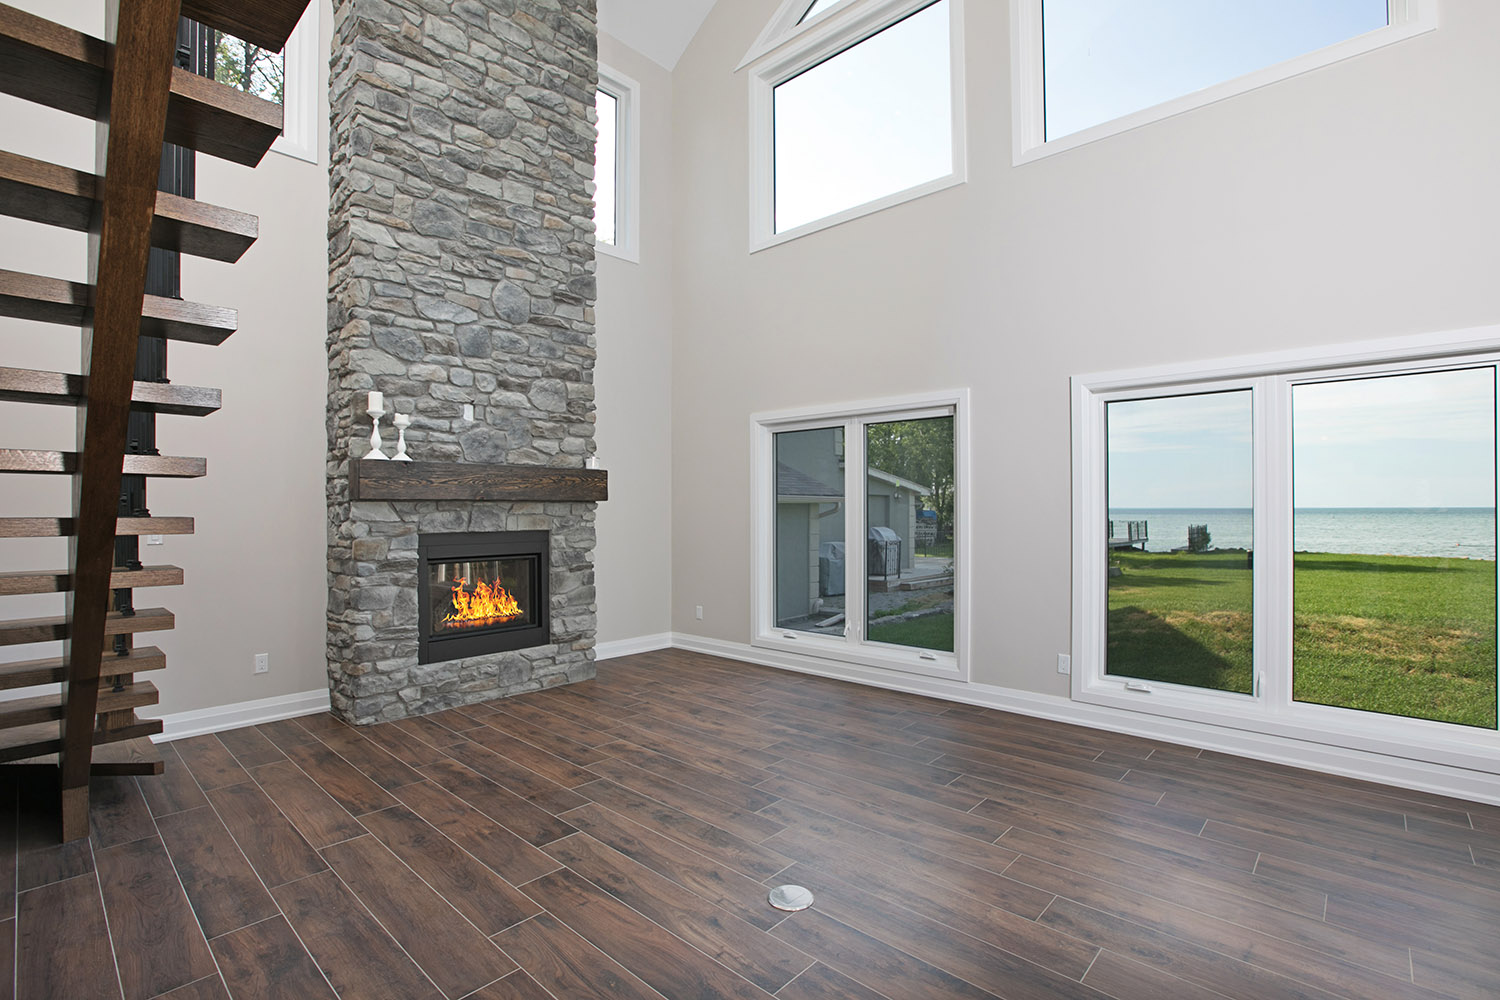 pefferlaw_lakefront_two_story_custom_home--construct_conserve_13.jpg